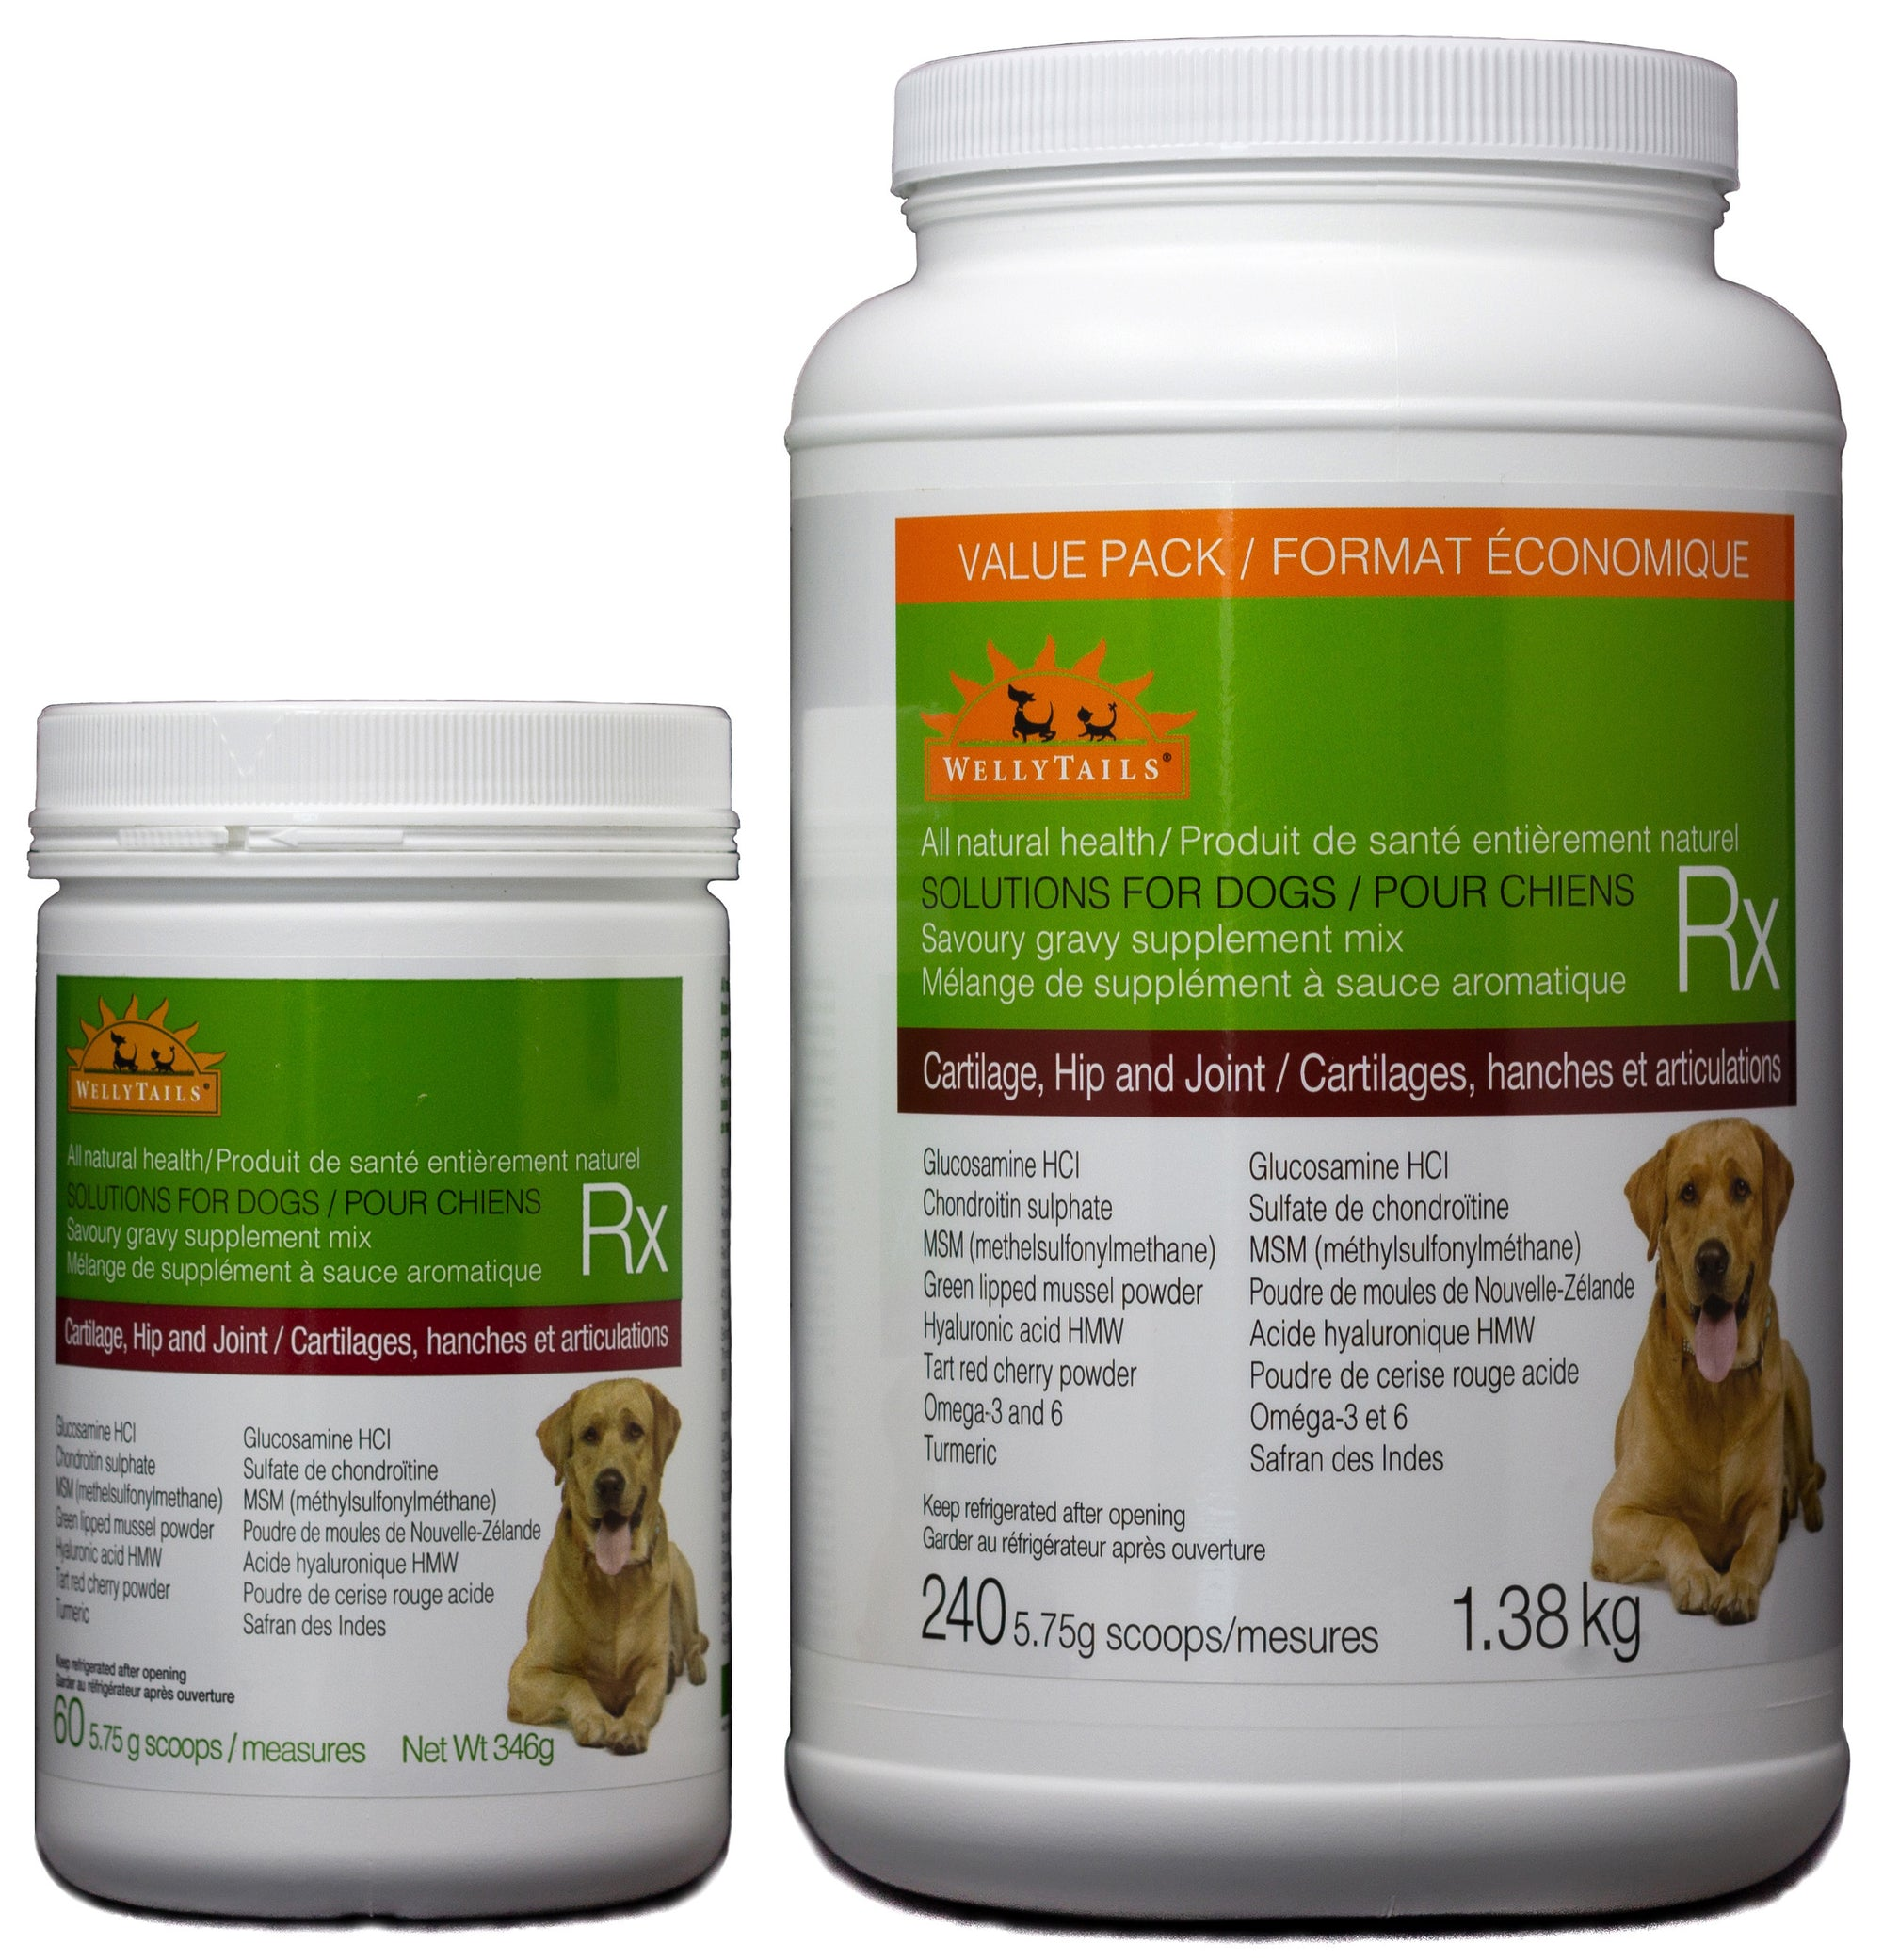 Veterinary Treatment Options for Dogs with Arthritis